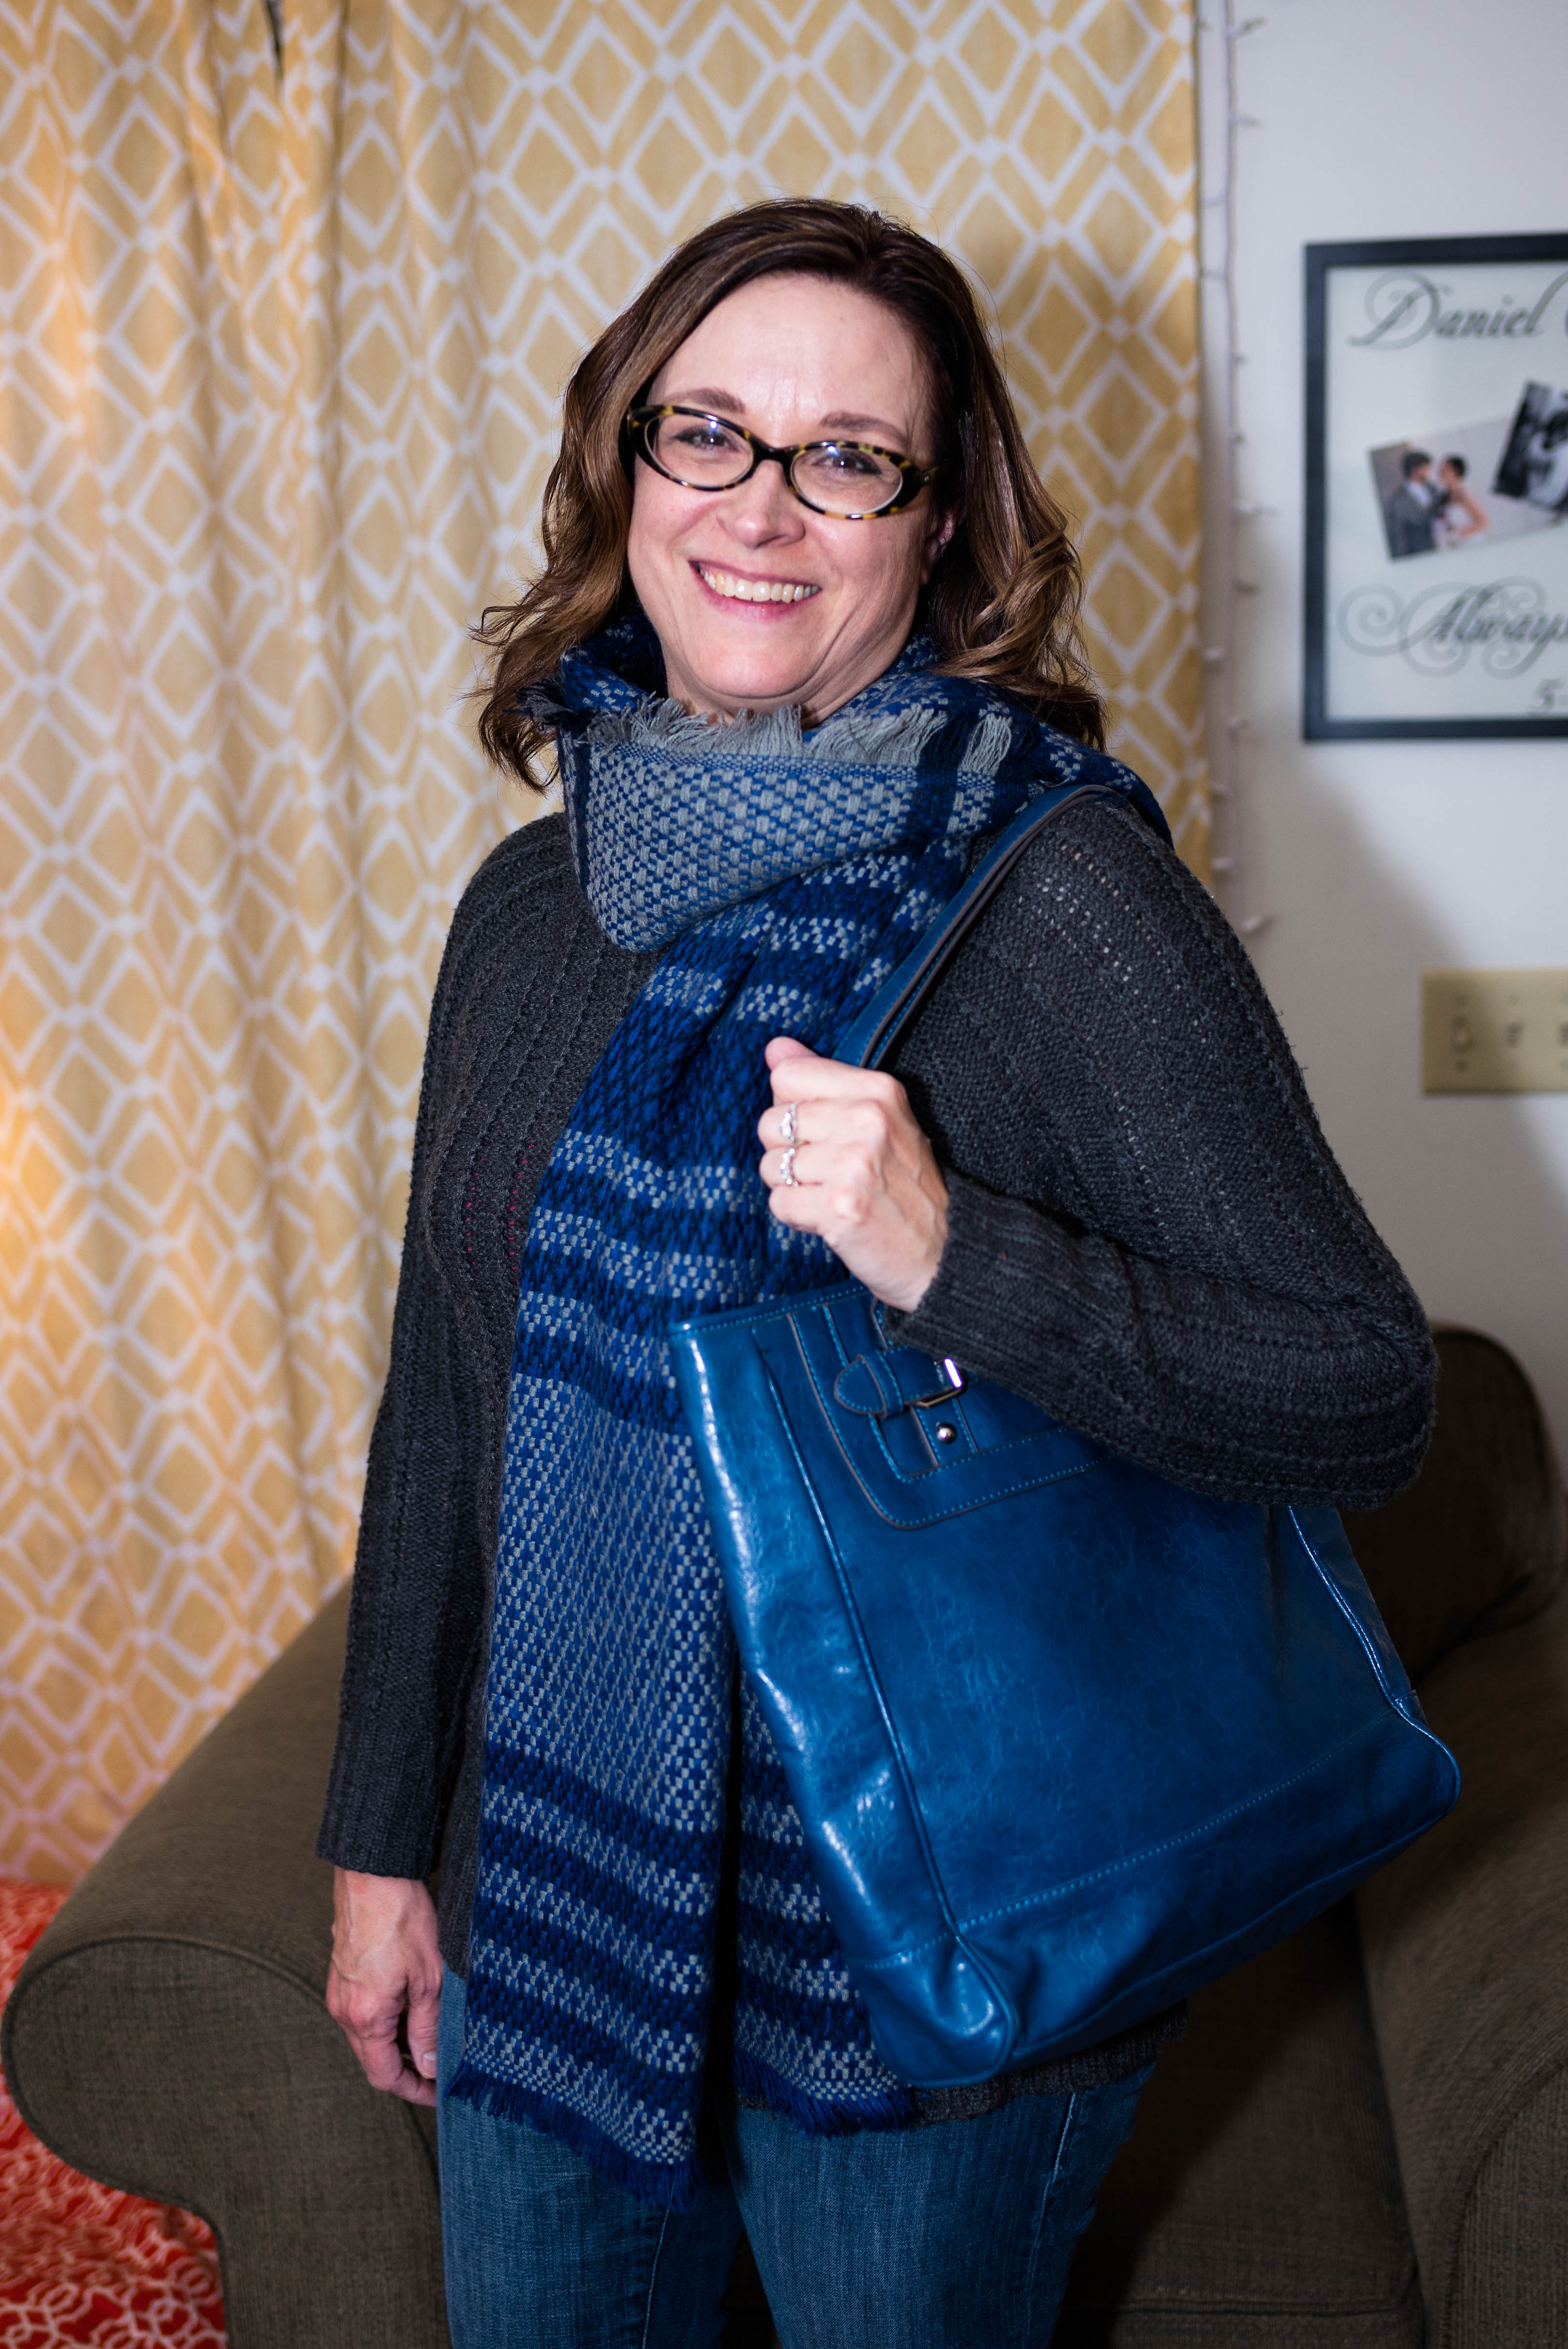 gray and blue scarf with blue bag